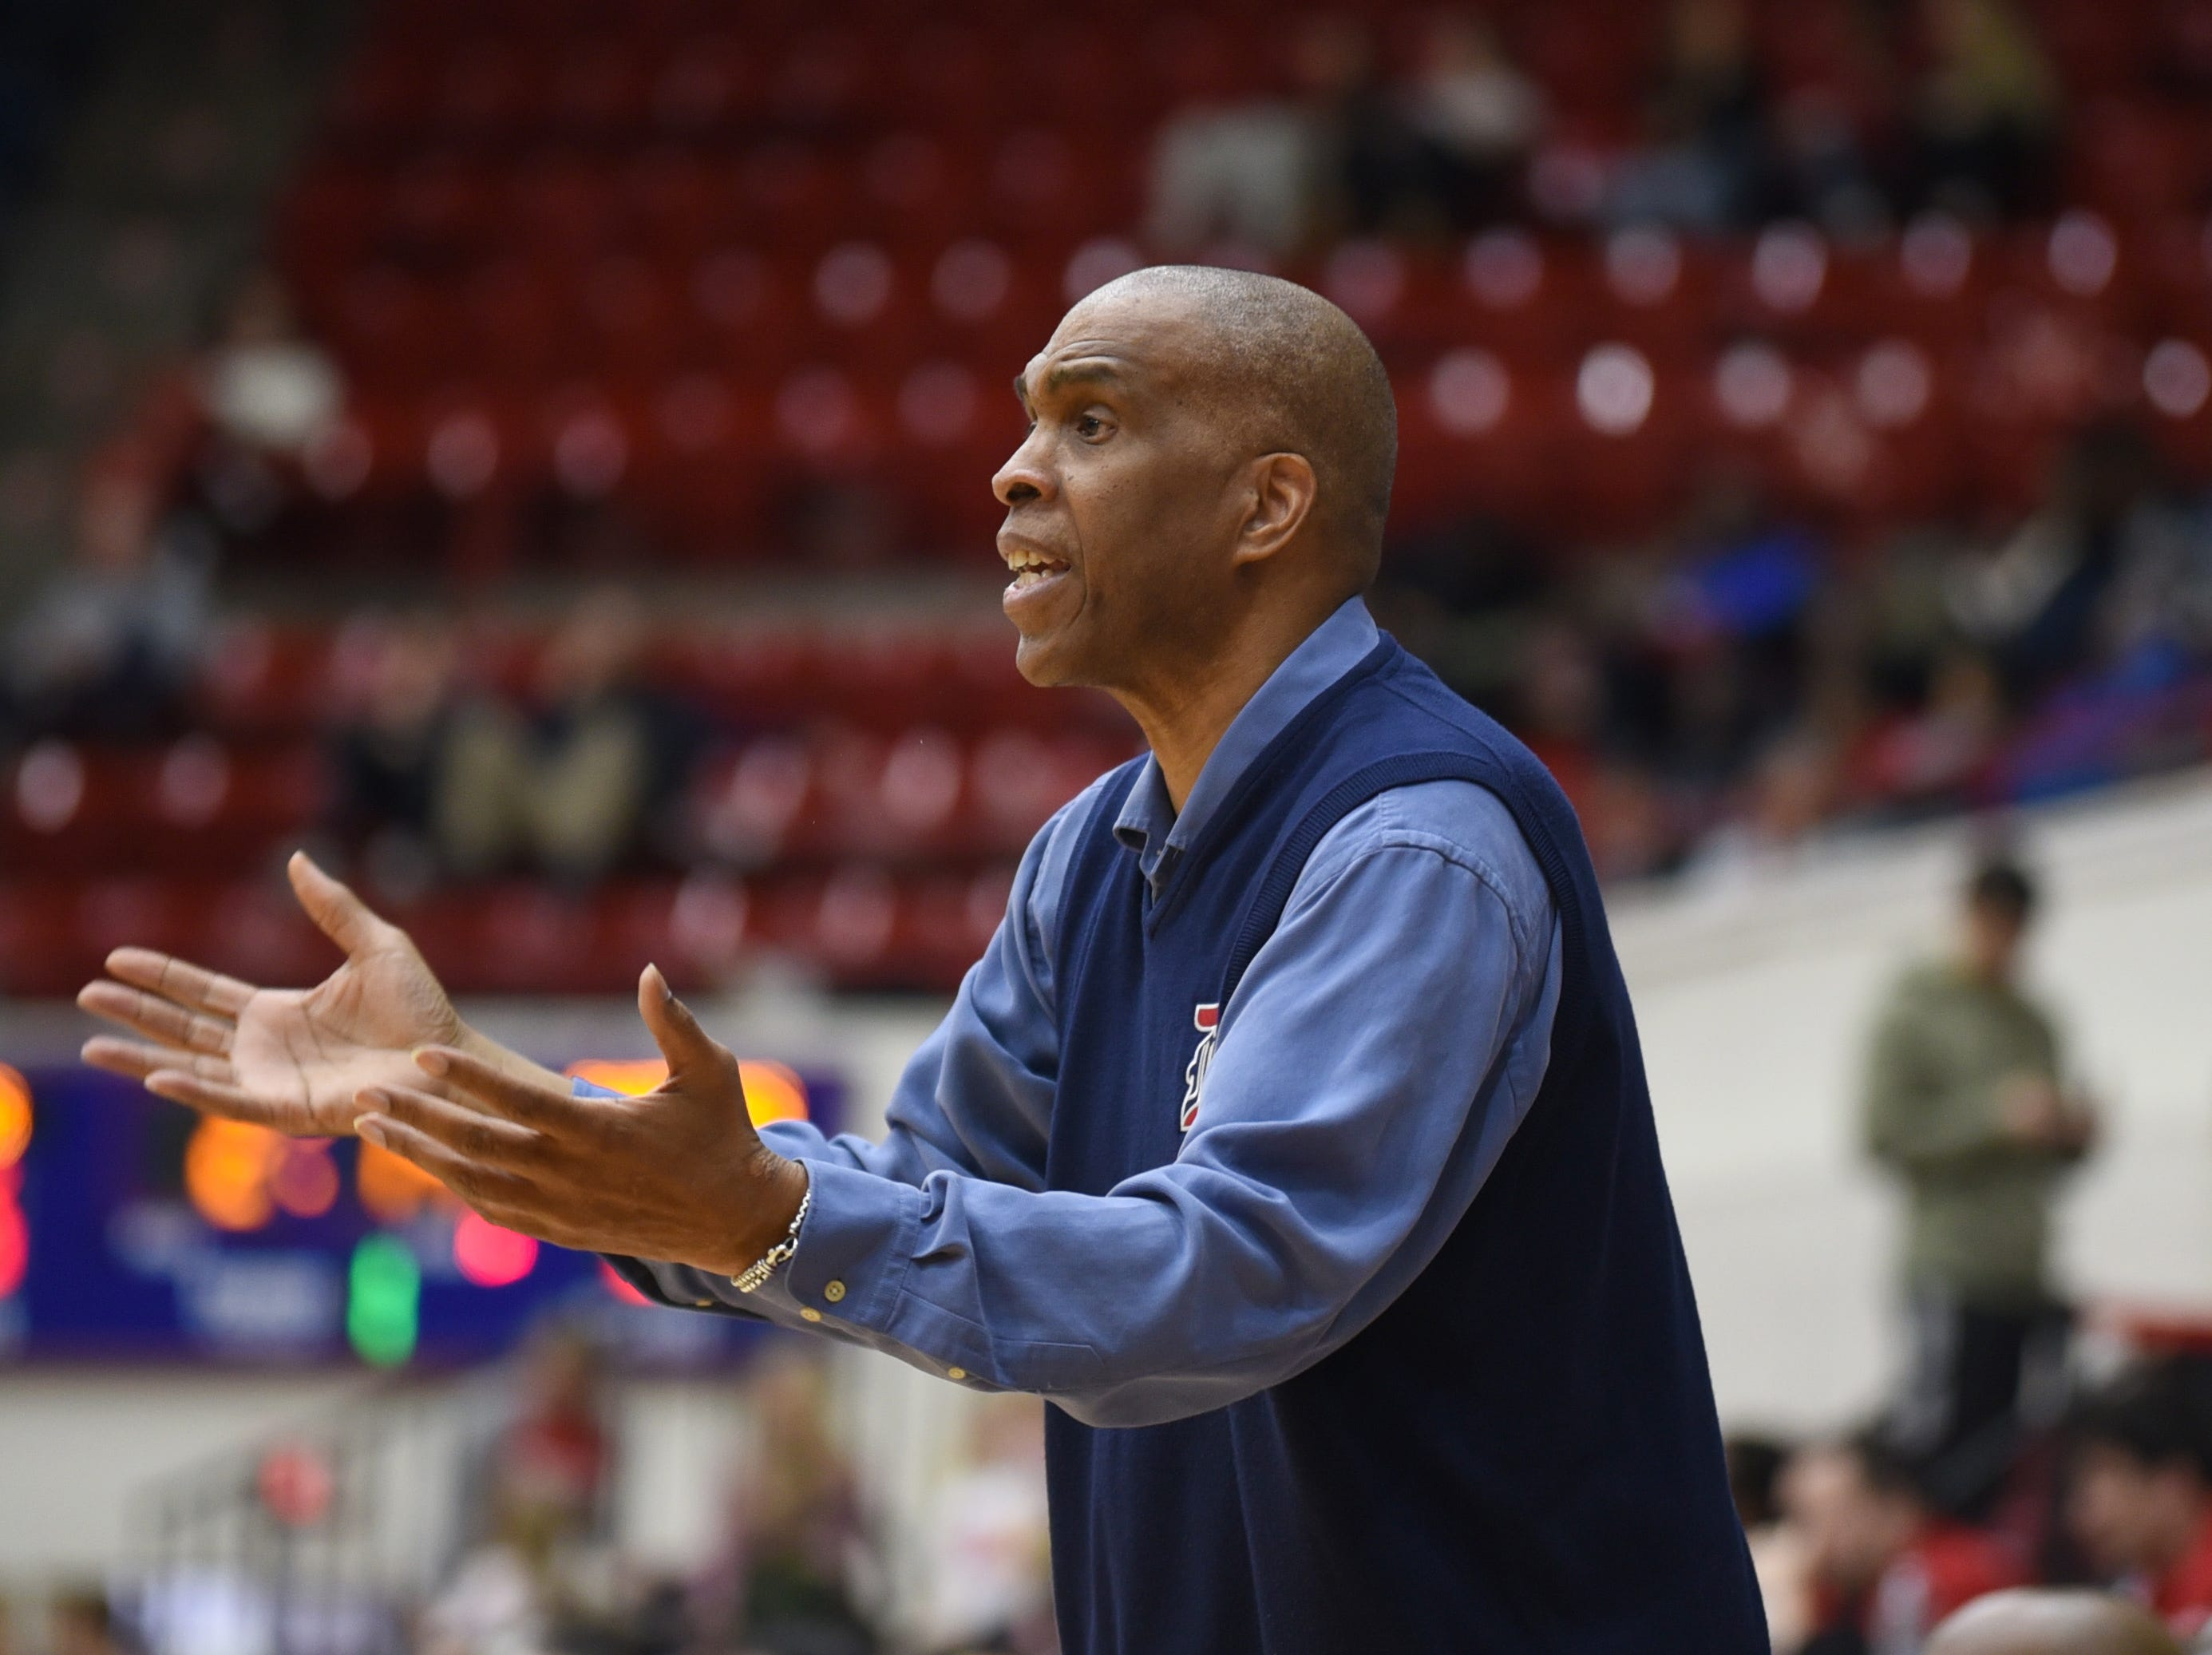 University of Detroit Mercy head basketball coach Mike Davis shouts to his players during a game against University of Milwaukee.